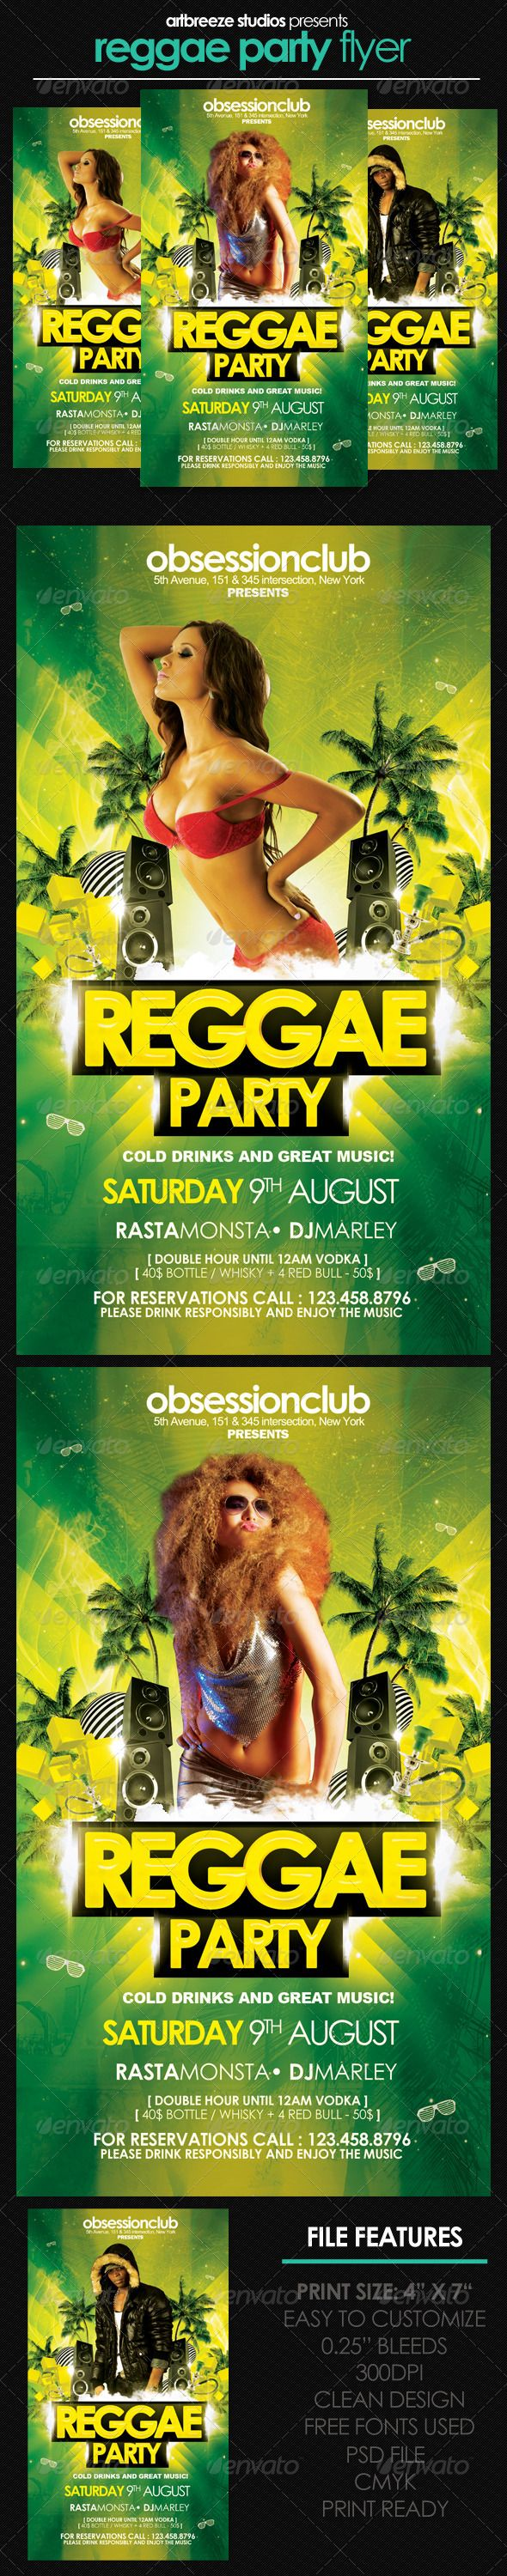 Reggae Party Flyer — Photoshop PSD #yellow #reggae party • Available here → https://graphicriver.net/item/reggae-party-flyer/2820390?ref=pxcr